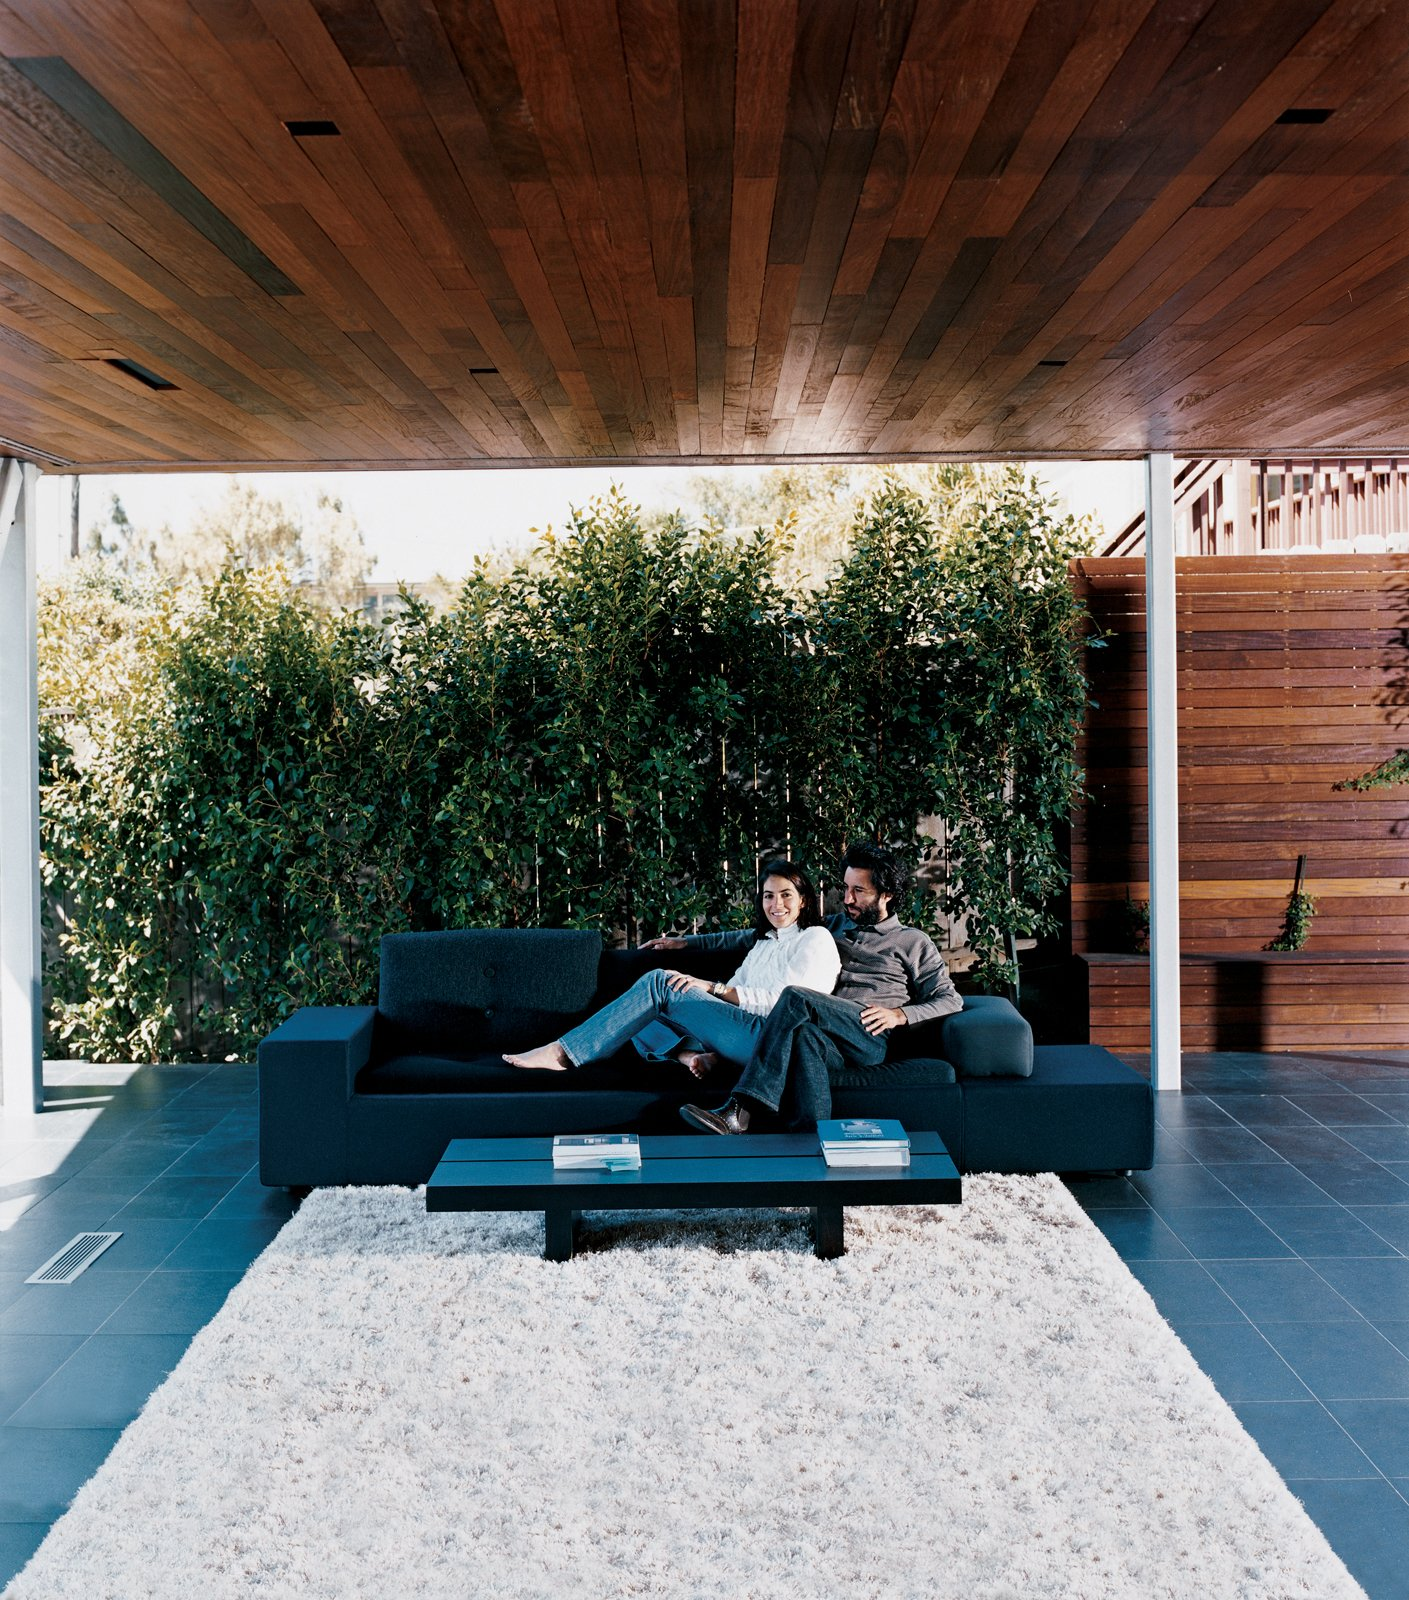 Sebastian and Maricarmen take in the scenery from the comfort of their exposed living room. The couple sits on a Polder sofa by Hella Jongerius for Vitra. Tagged: Outdoor and Back Yard.  Photo 6 of 7 in Sebastian Mariscal's Wood Architecture from Double the Pleasure